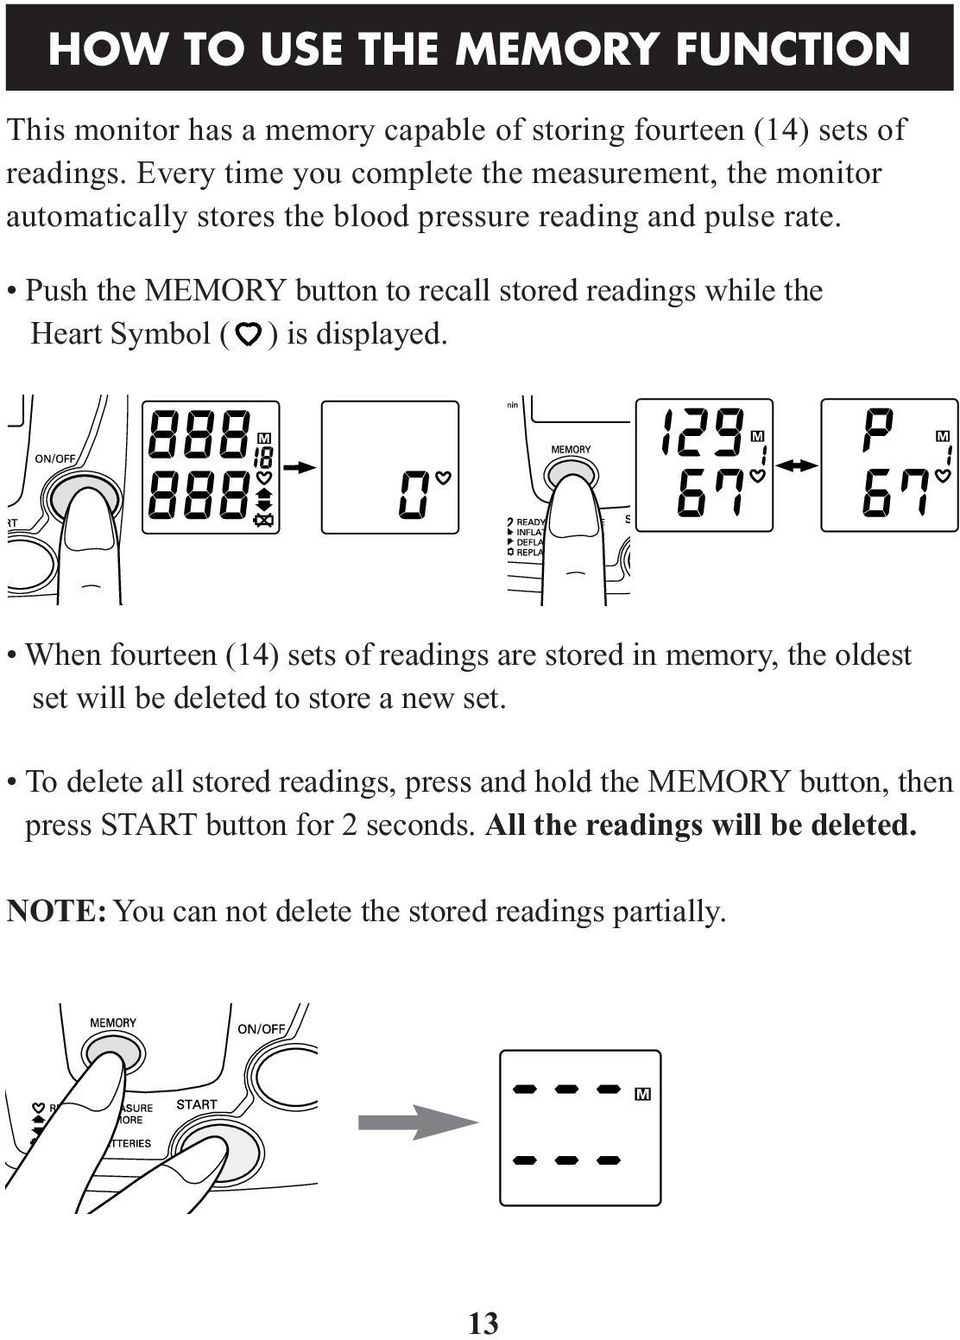 Push the MEMORY button to recall stored readings while the Heart Symbol ( ) is displayed.